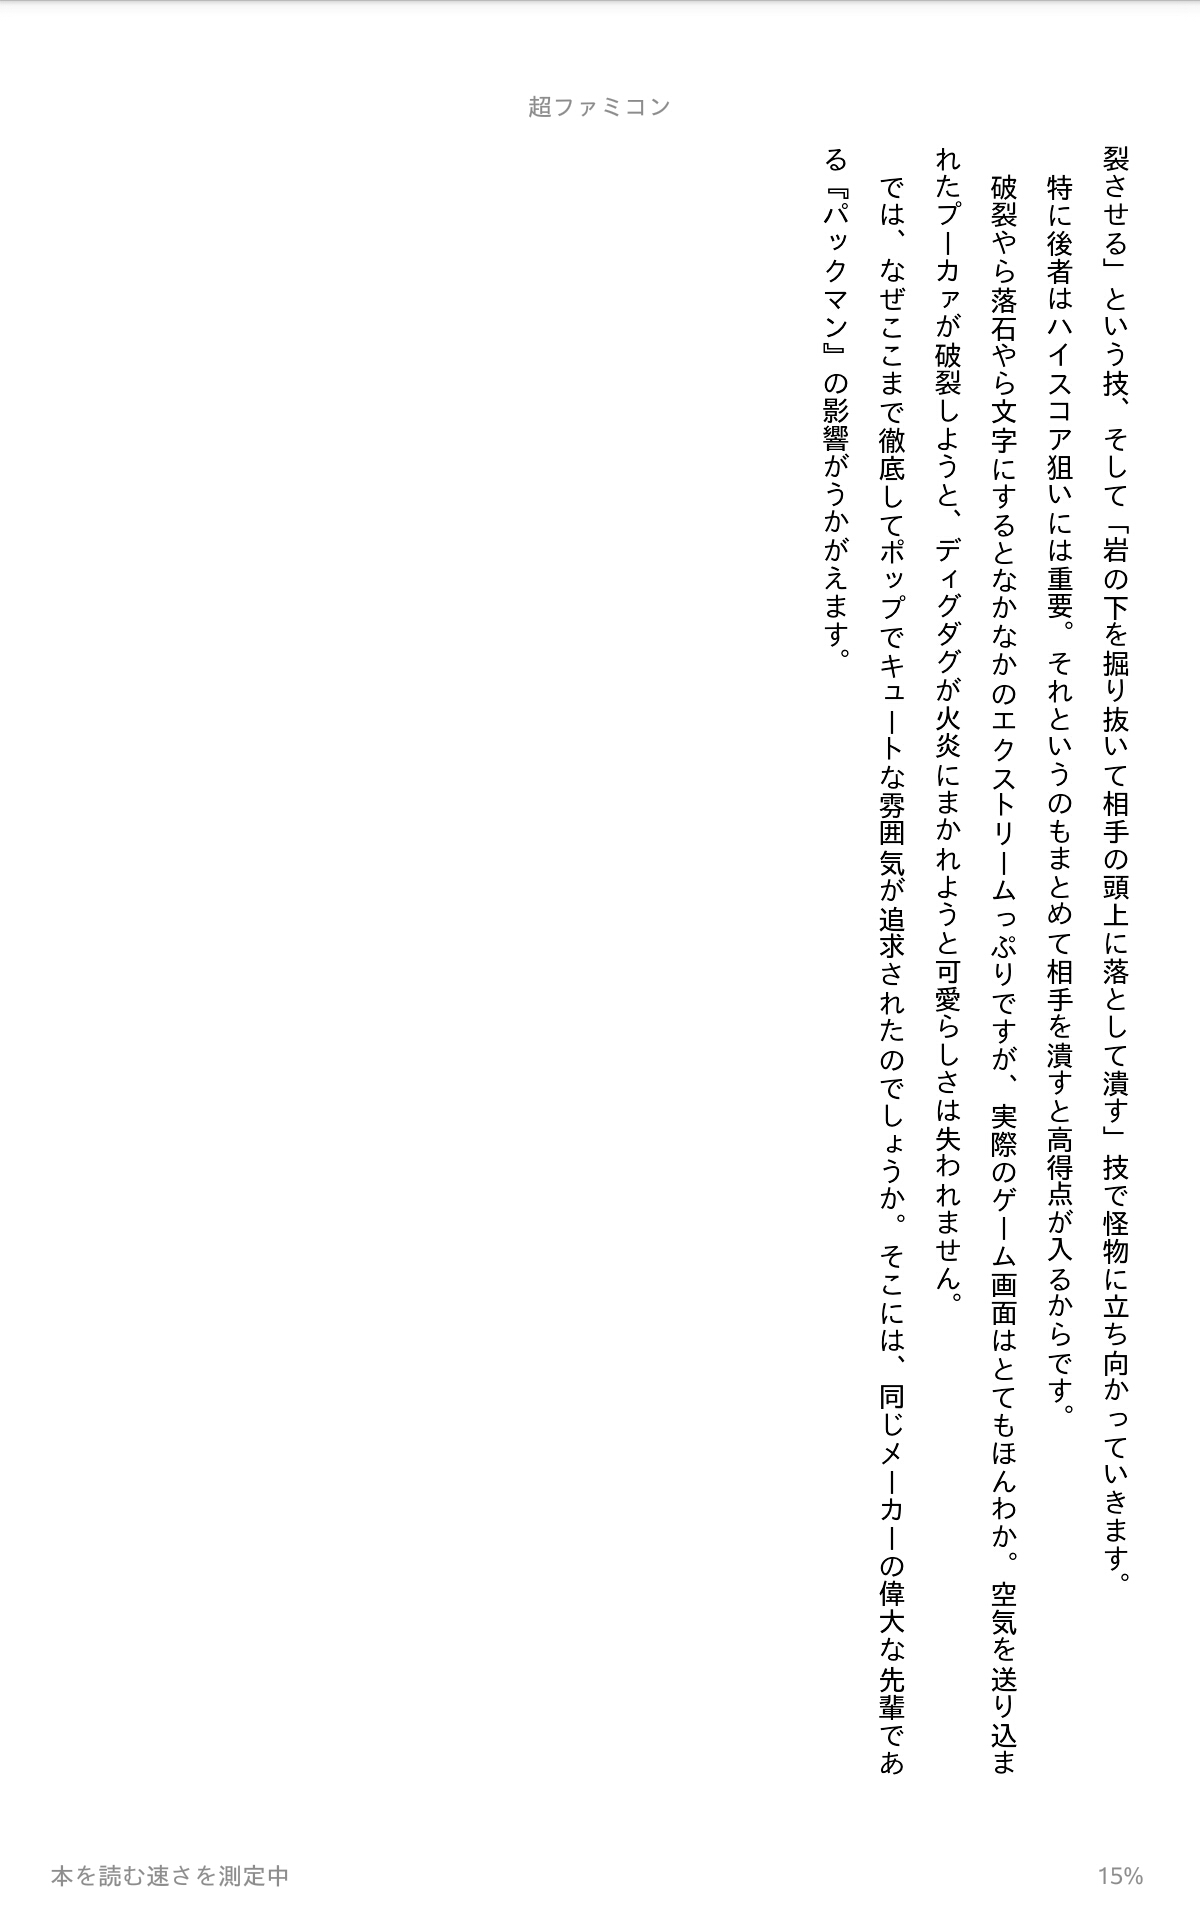 Kindleの文字の大きさを変える(Android)3